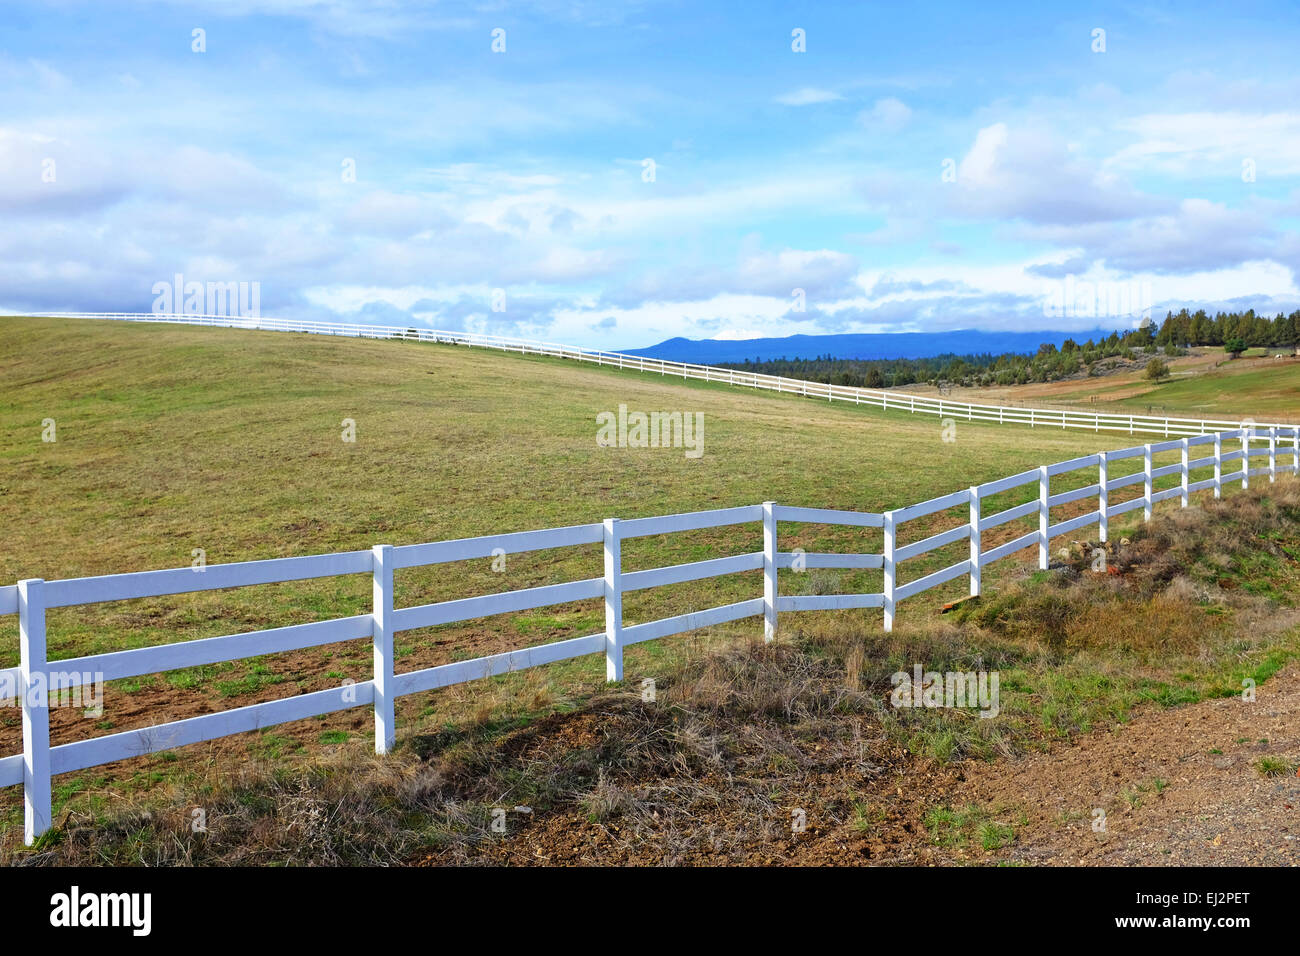 A long white ranch rail fence surrounding a horse pasture in Tumalo, Oregon - Stock Image